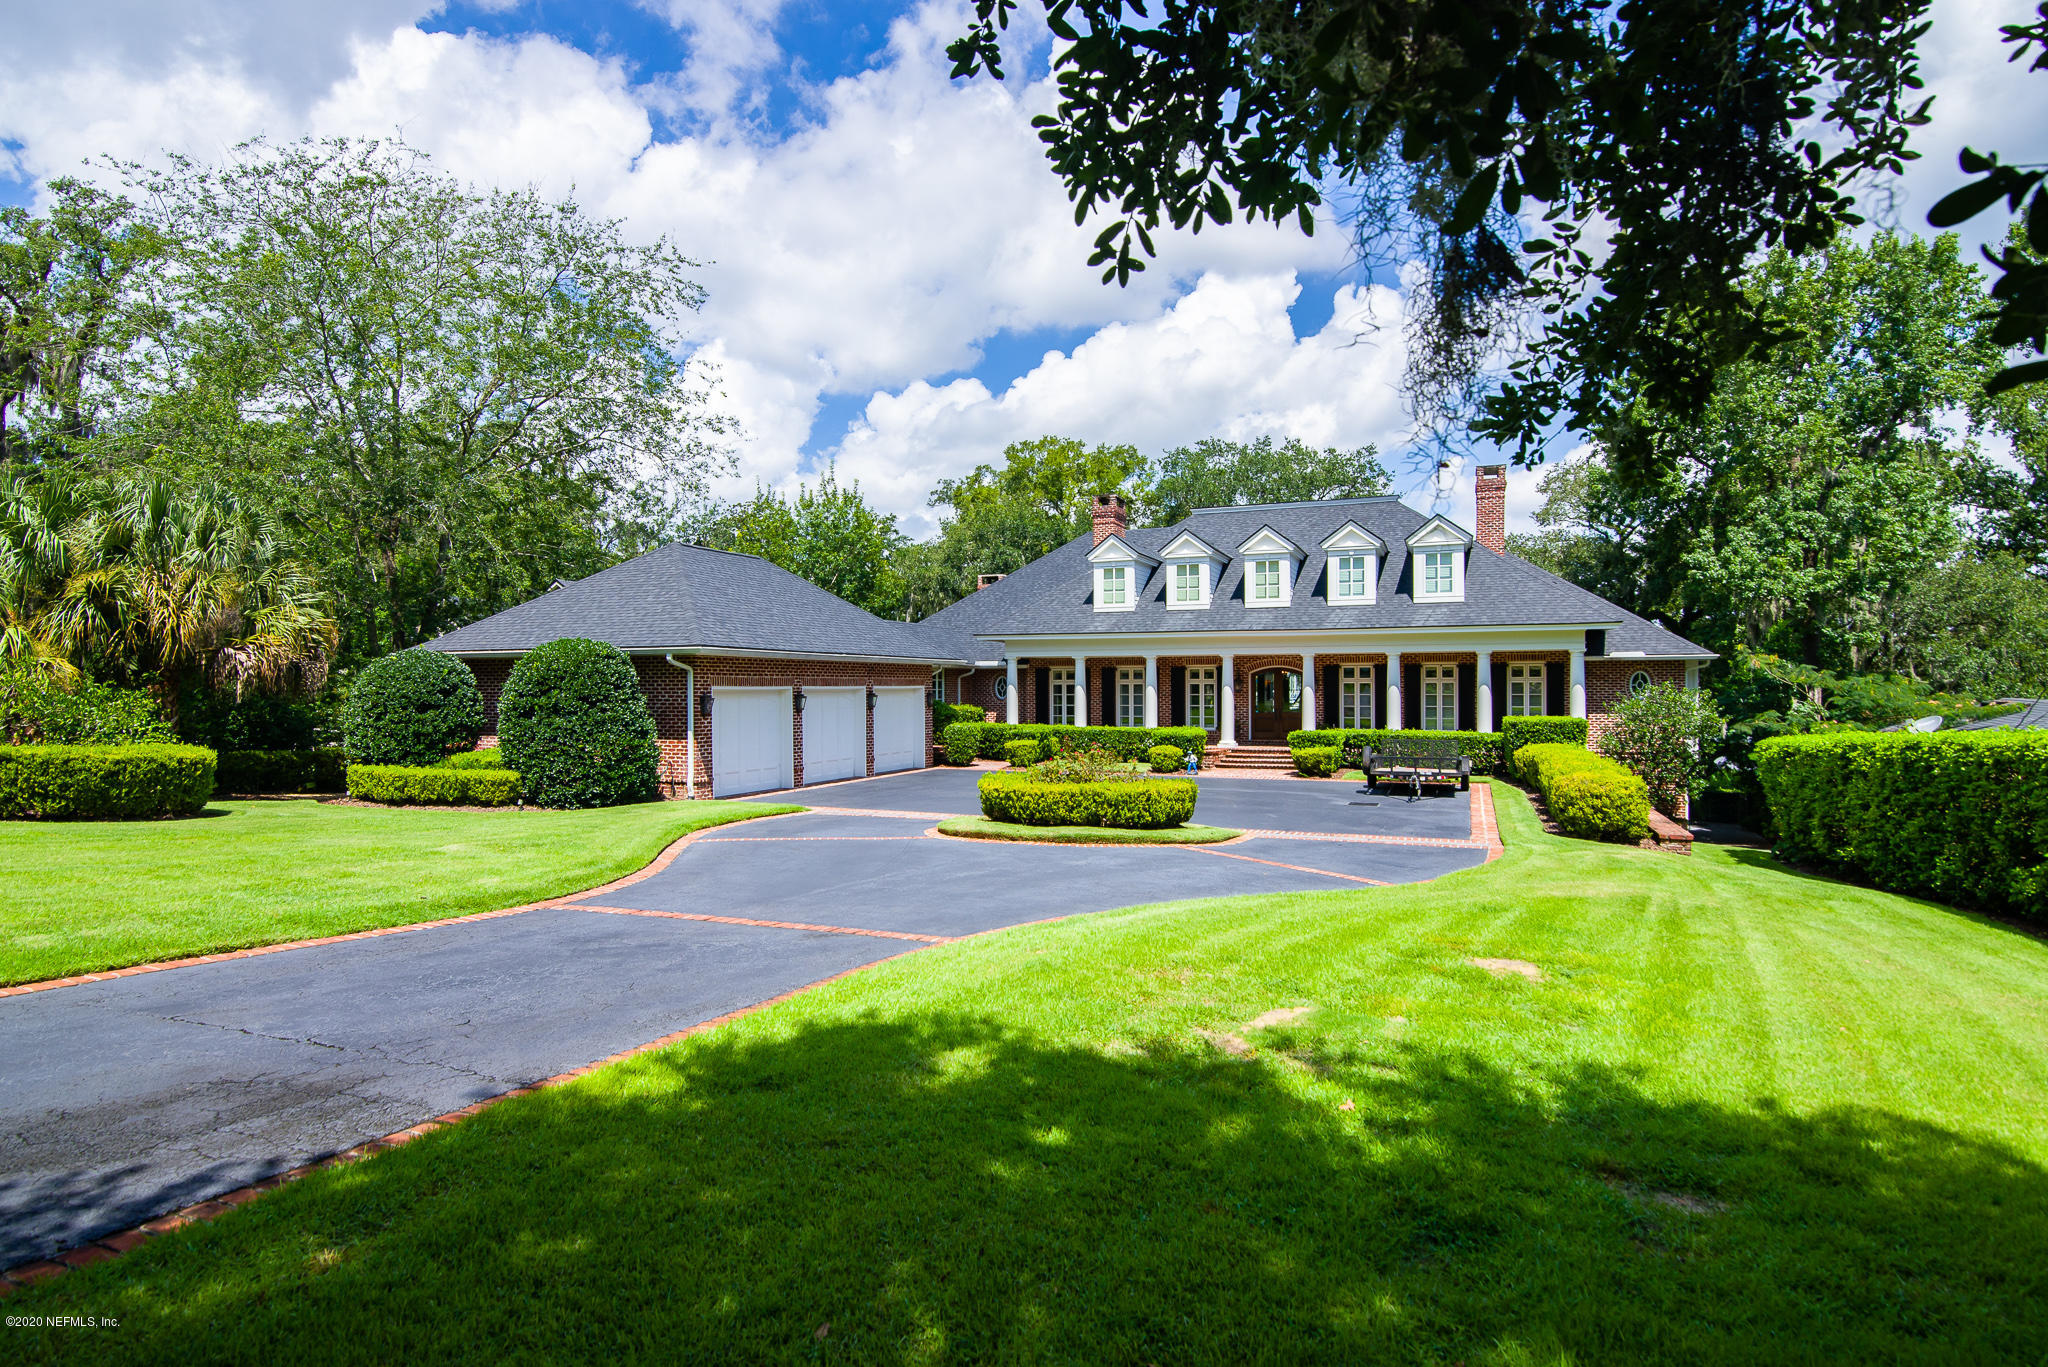 This house and setting will take your breath away and leave you speechless! This meticulously built and maintained  home has it all!  High ceilings, superb architectural details and moldings,   wide planked stained pine floors ,each bedroom has its own bath and walk in closet, chefs kitchen, the marble floors in the master bath are heated and the towel holders too!  Steam shower. movie theatre room, bonus room, home office, laundry up and downstairs, , summer kitchen with fireplace, pool, hot tub and  dock  There is even a garage ''underground'' for the golf cart and boat toys!  A good time to be had by all  at this fabulous house! Buyer to verify all measurements.